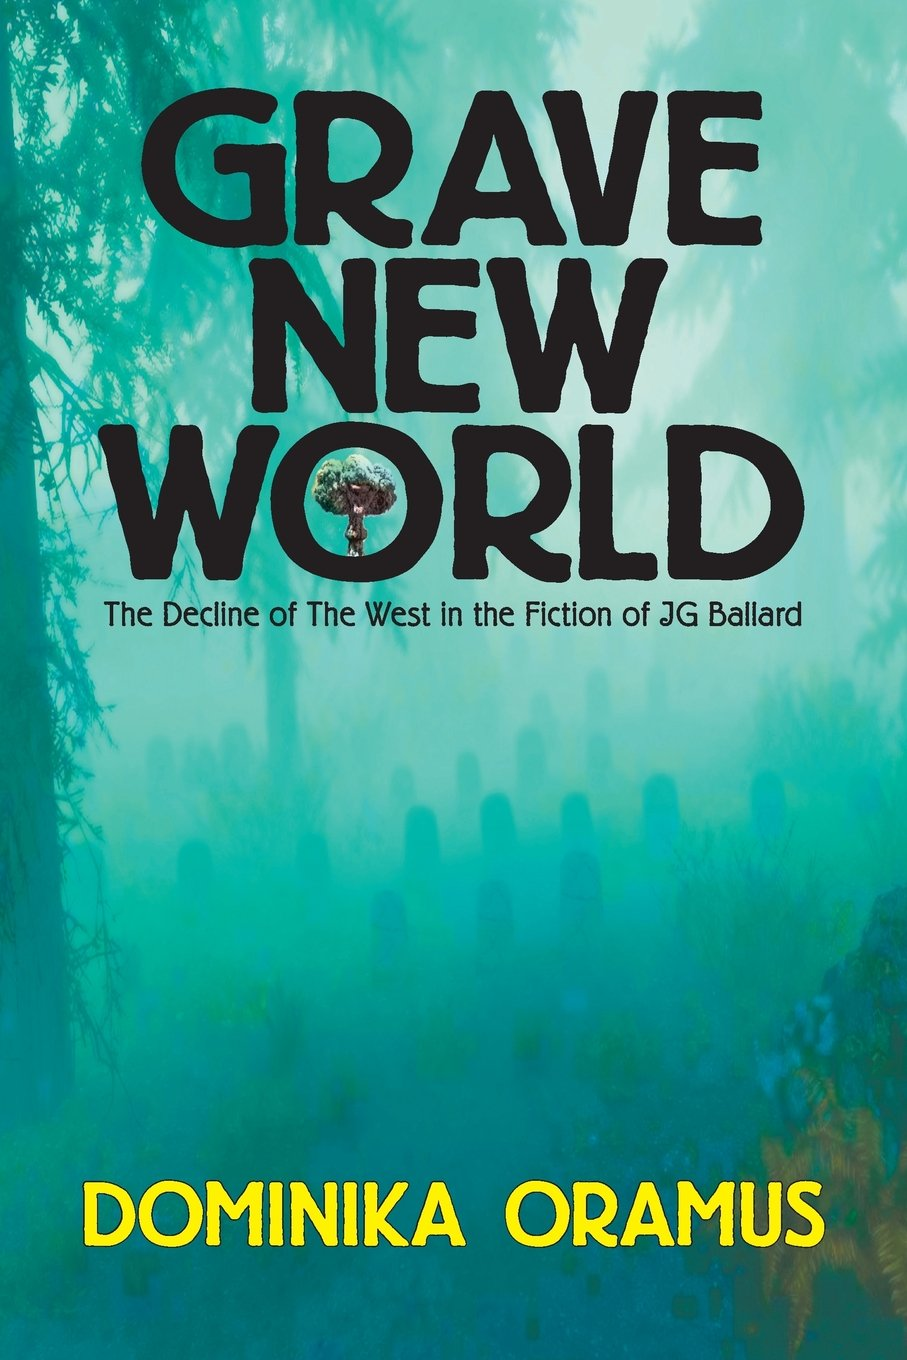 Download Grave New World: The Decline of The West in the Fiction of J.G. Ballard PDF